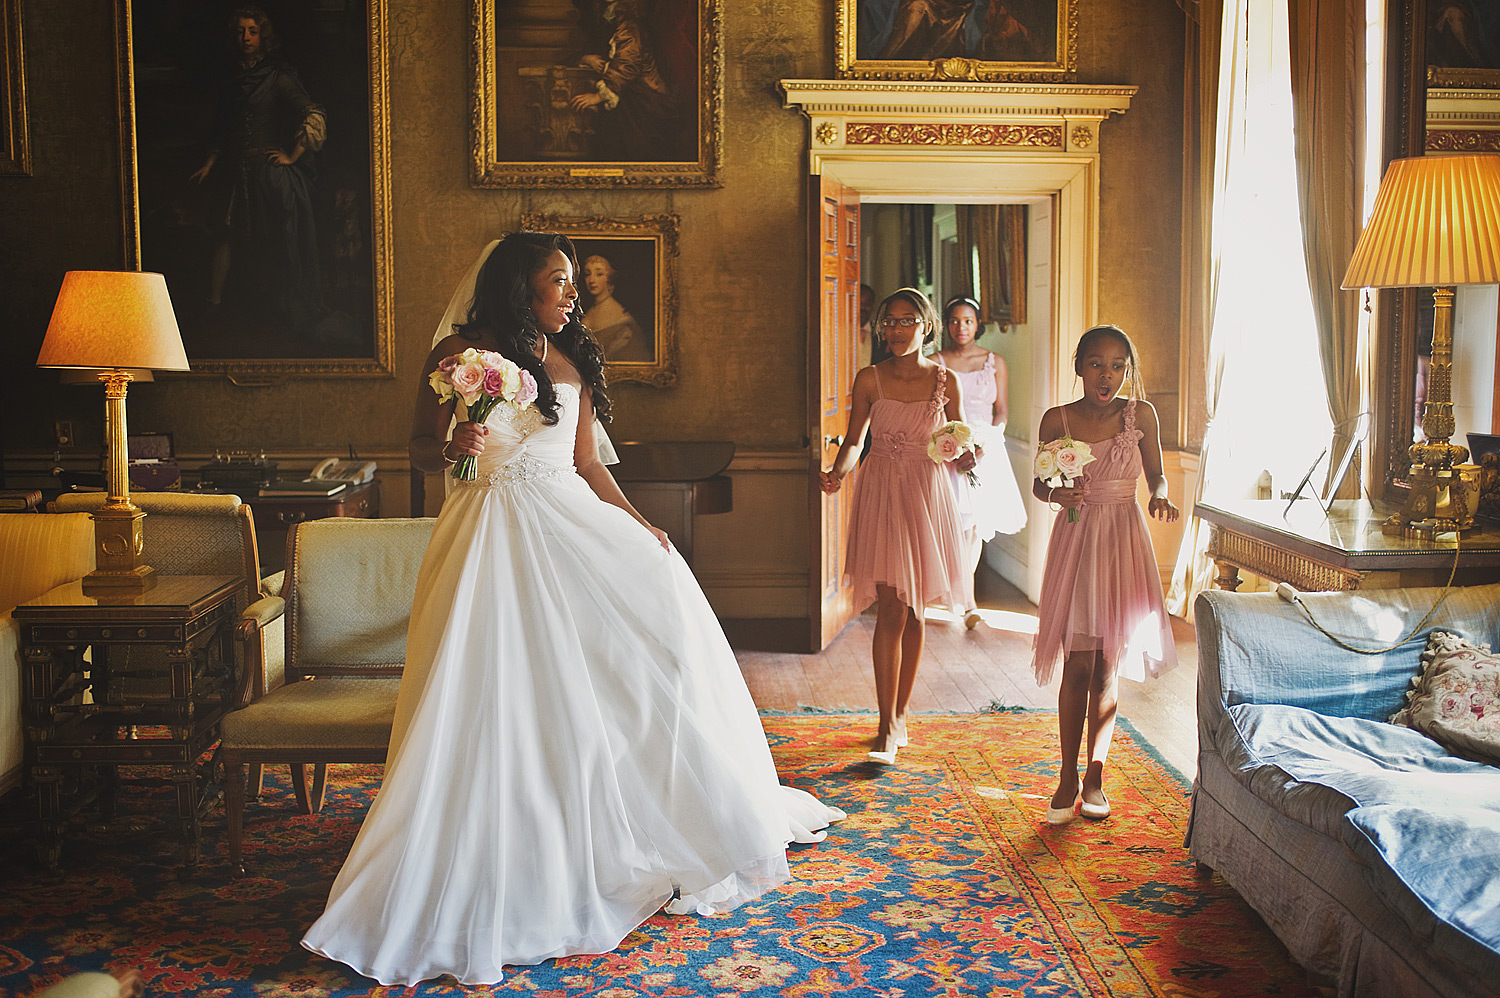 Bride and bridesmaids in drawing room at Syon Park in London.